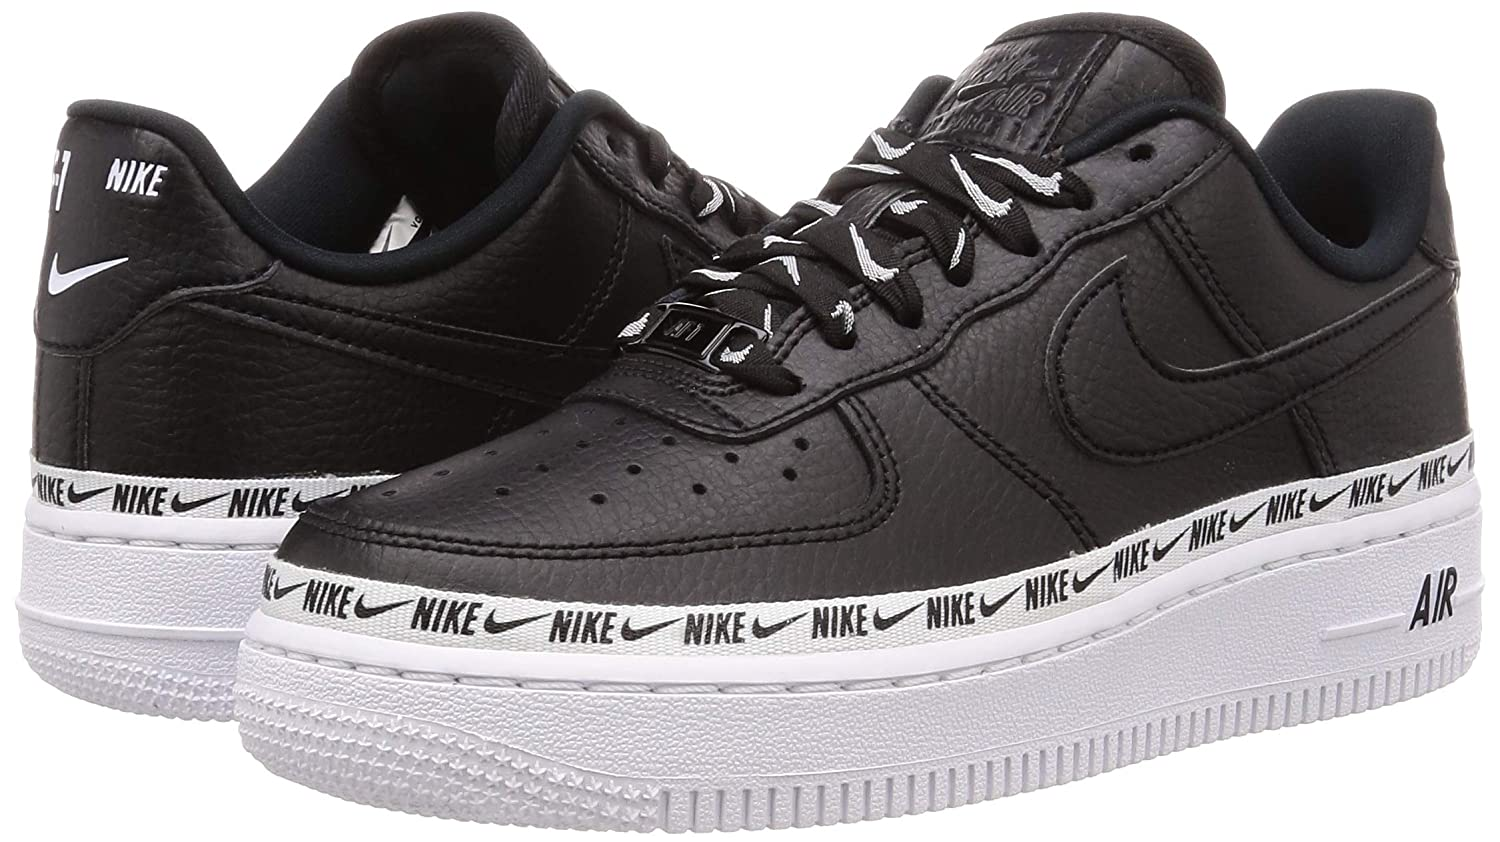 Original Official Nike Air Force 1 '07 SE Premium Women Skateboarding Shoes Trainers Sports Outdoor Footwear 2019 New AH6827 002